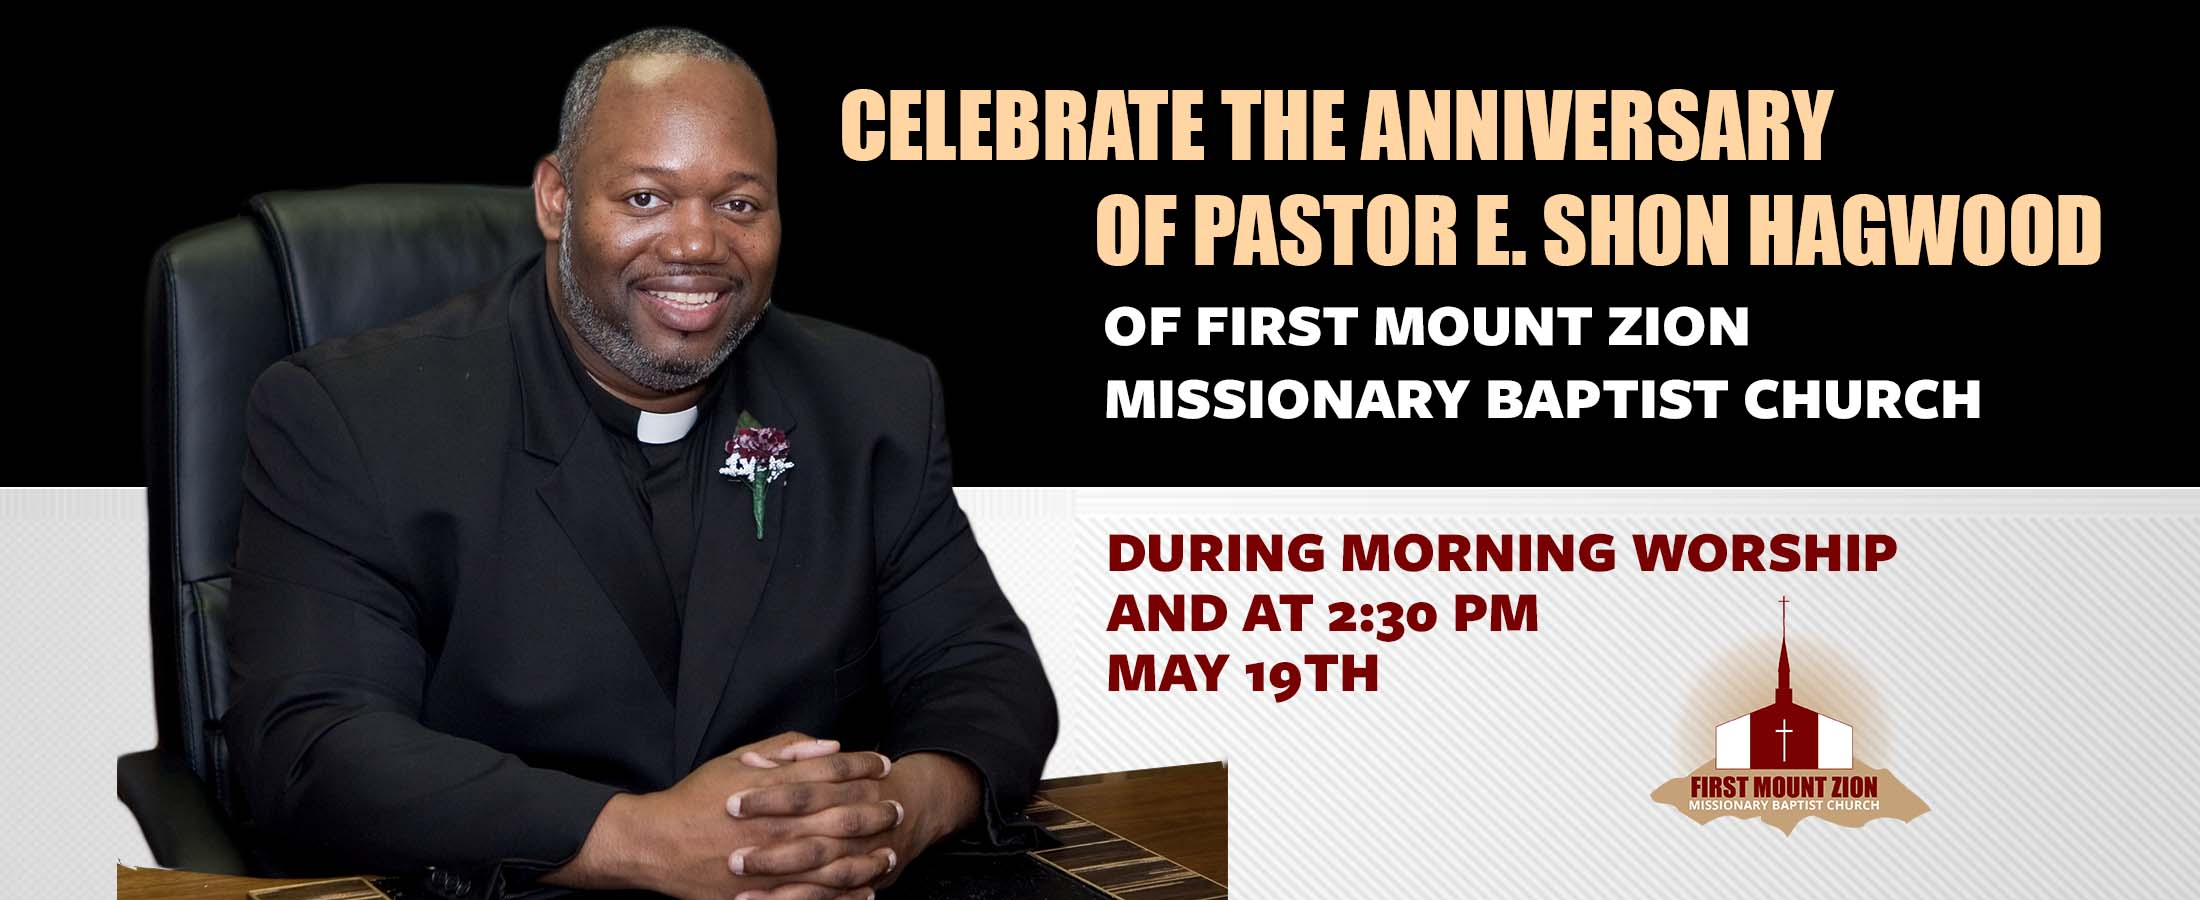 First Mount Zion Missionary Baptist ChurchPastor's Anniversary